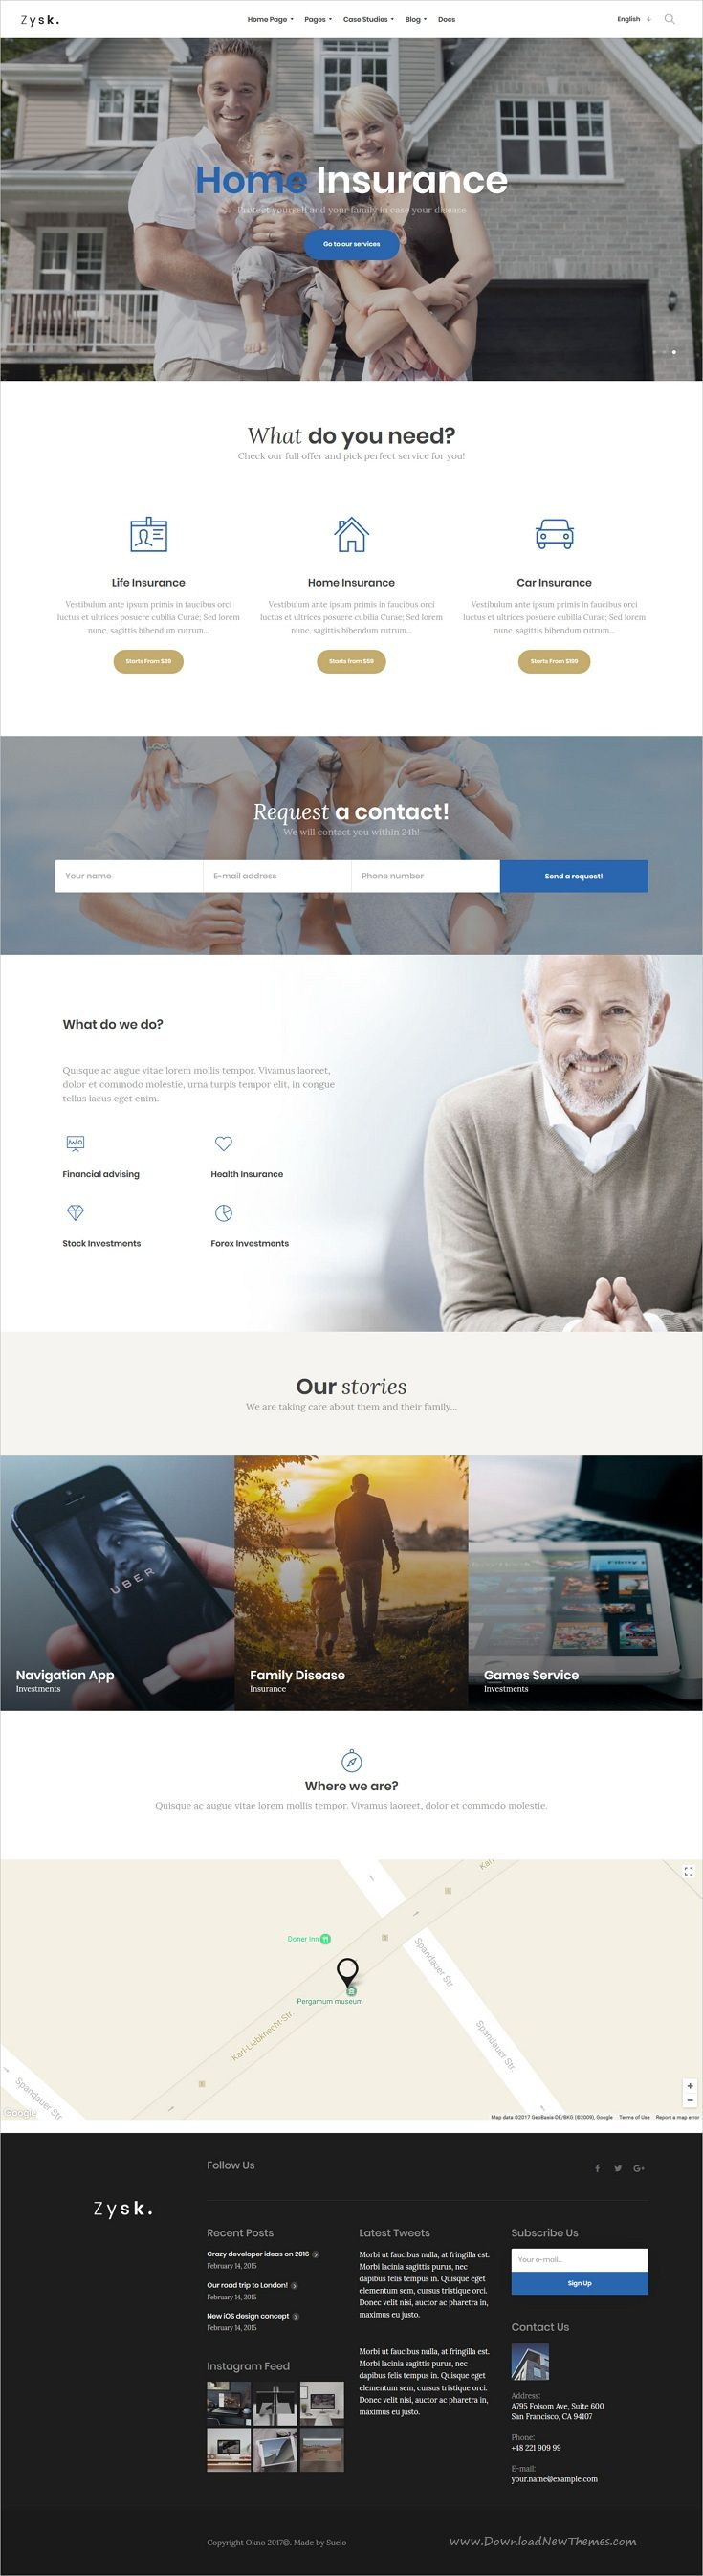 Zysk is smooth and stylish 7in1 responsive #WordPress theme for #insurance, business, #finance and consulting #services professional website download now..